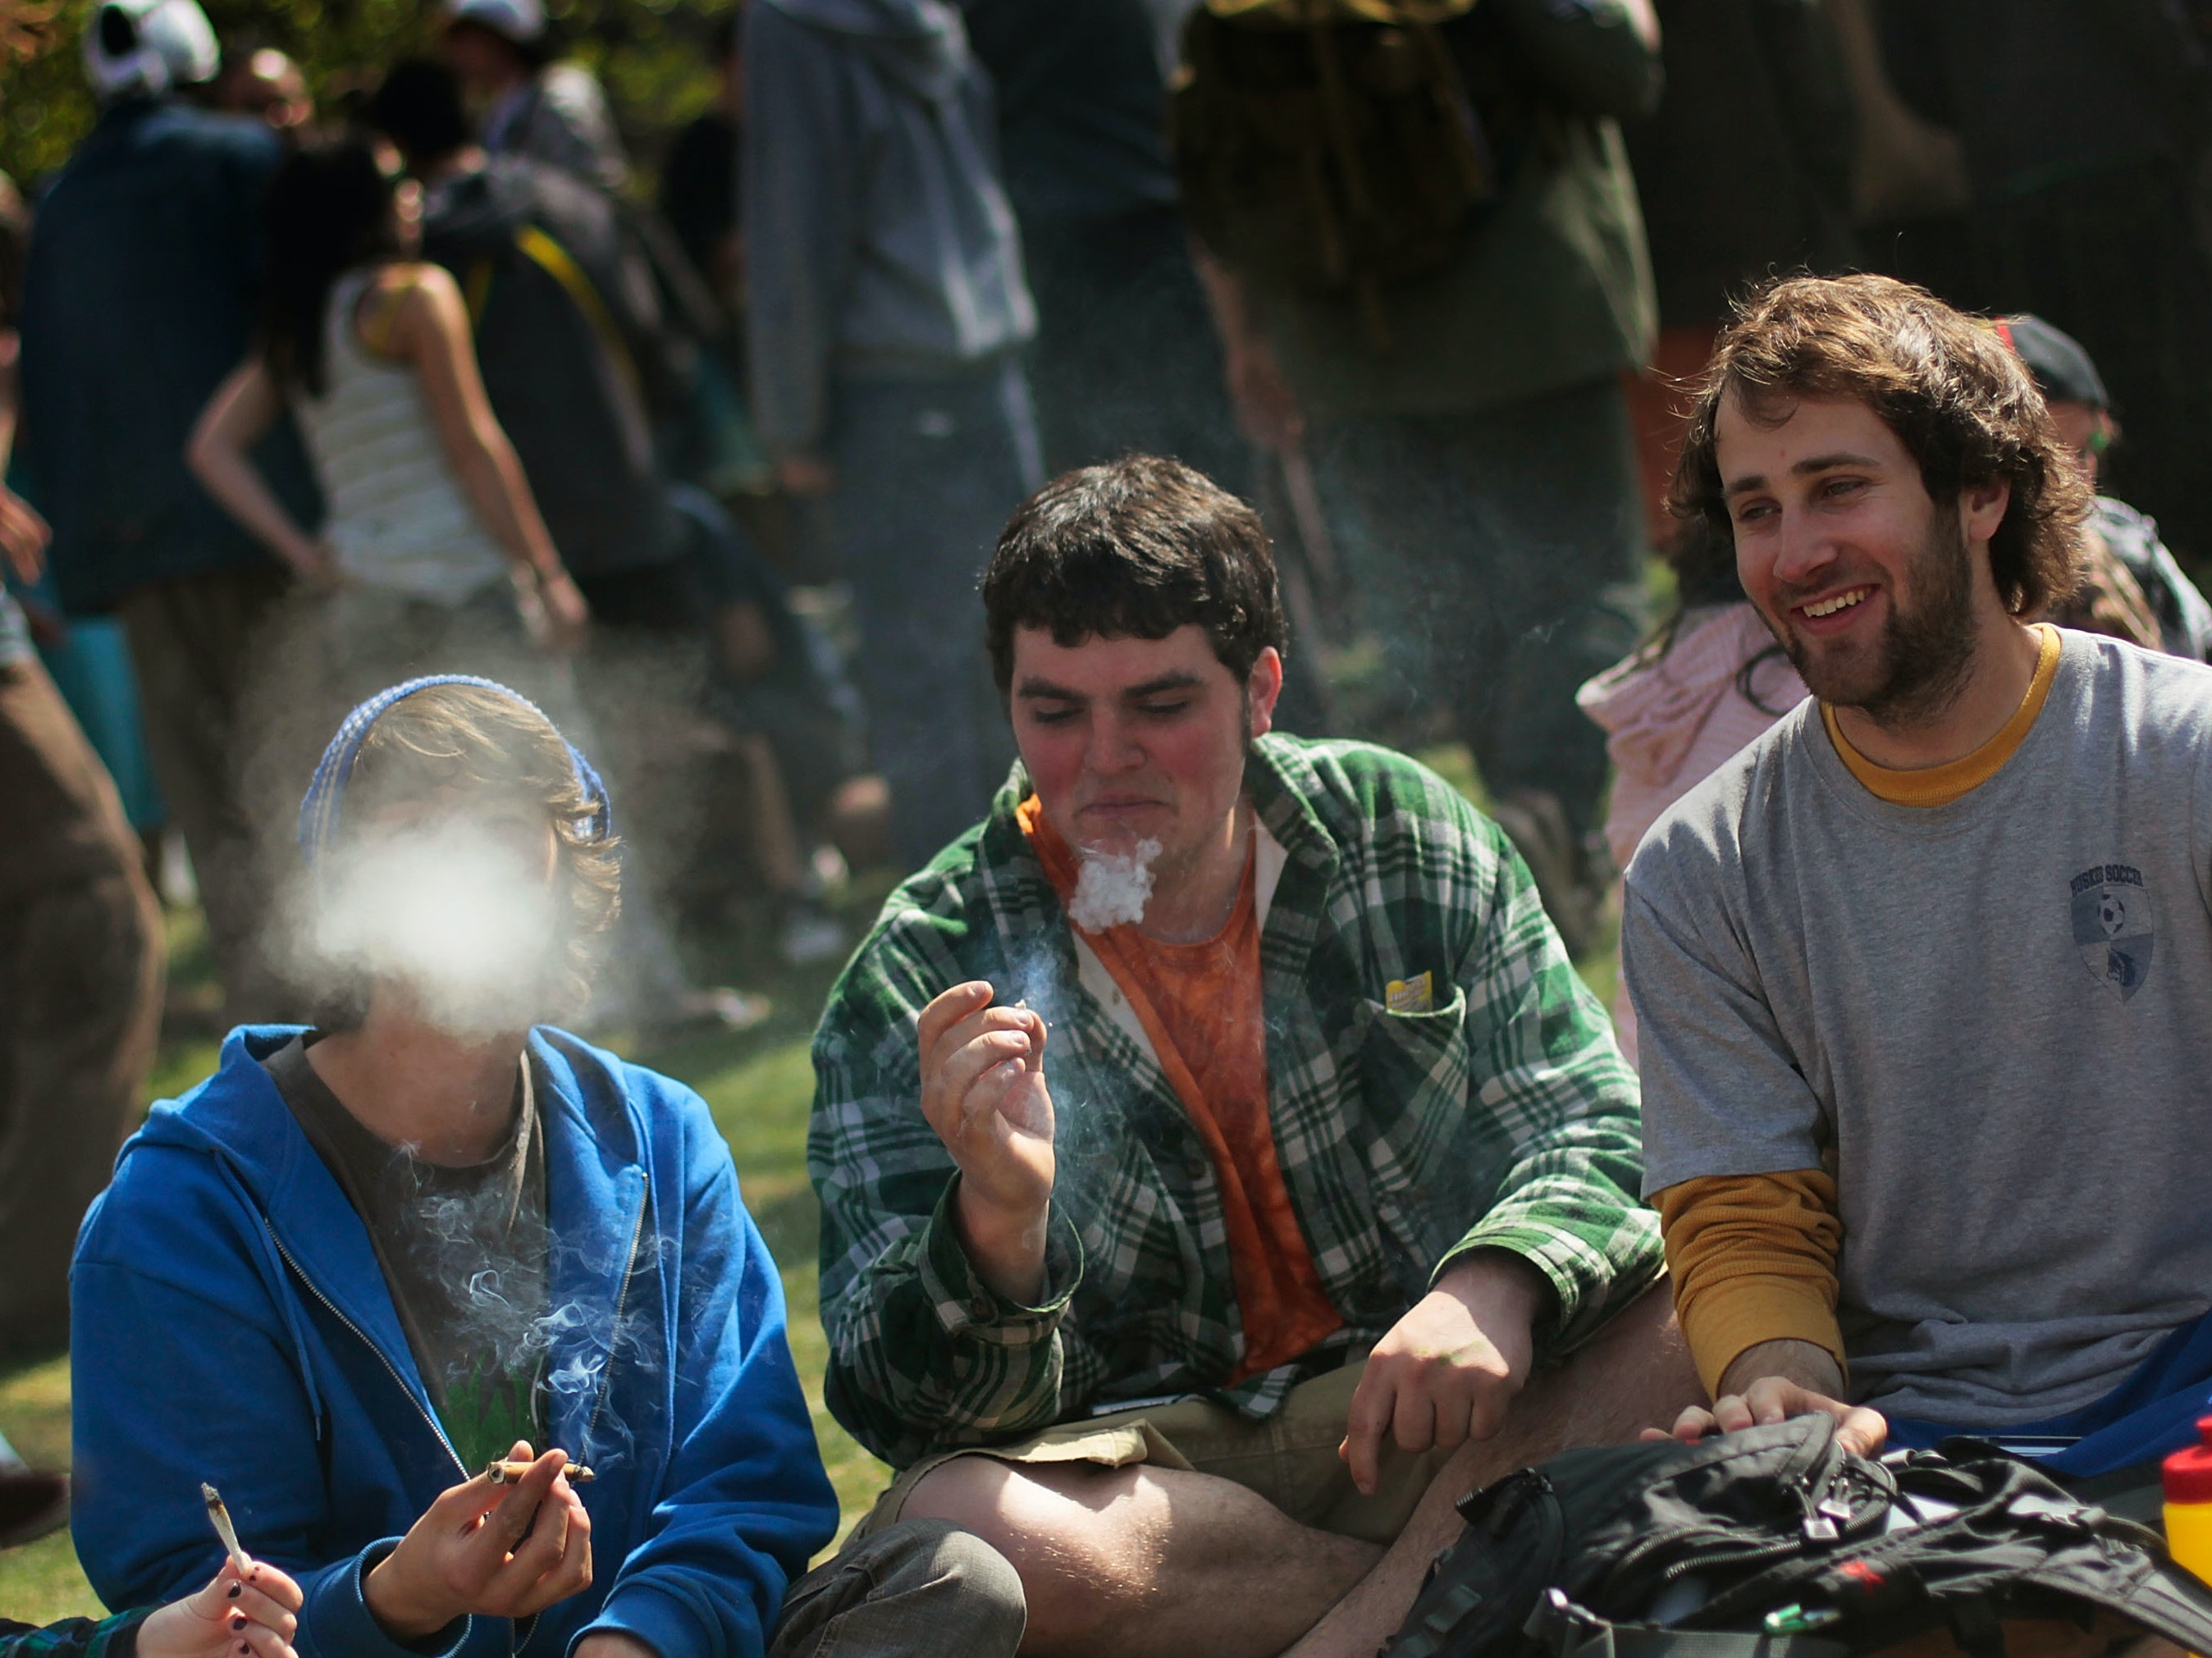 Marijuana Use Among Teenagers Is Actually Declining